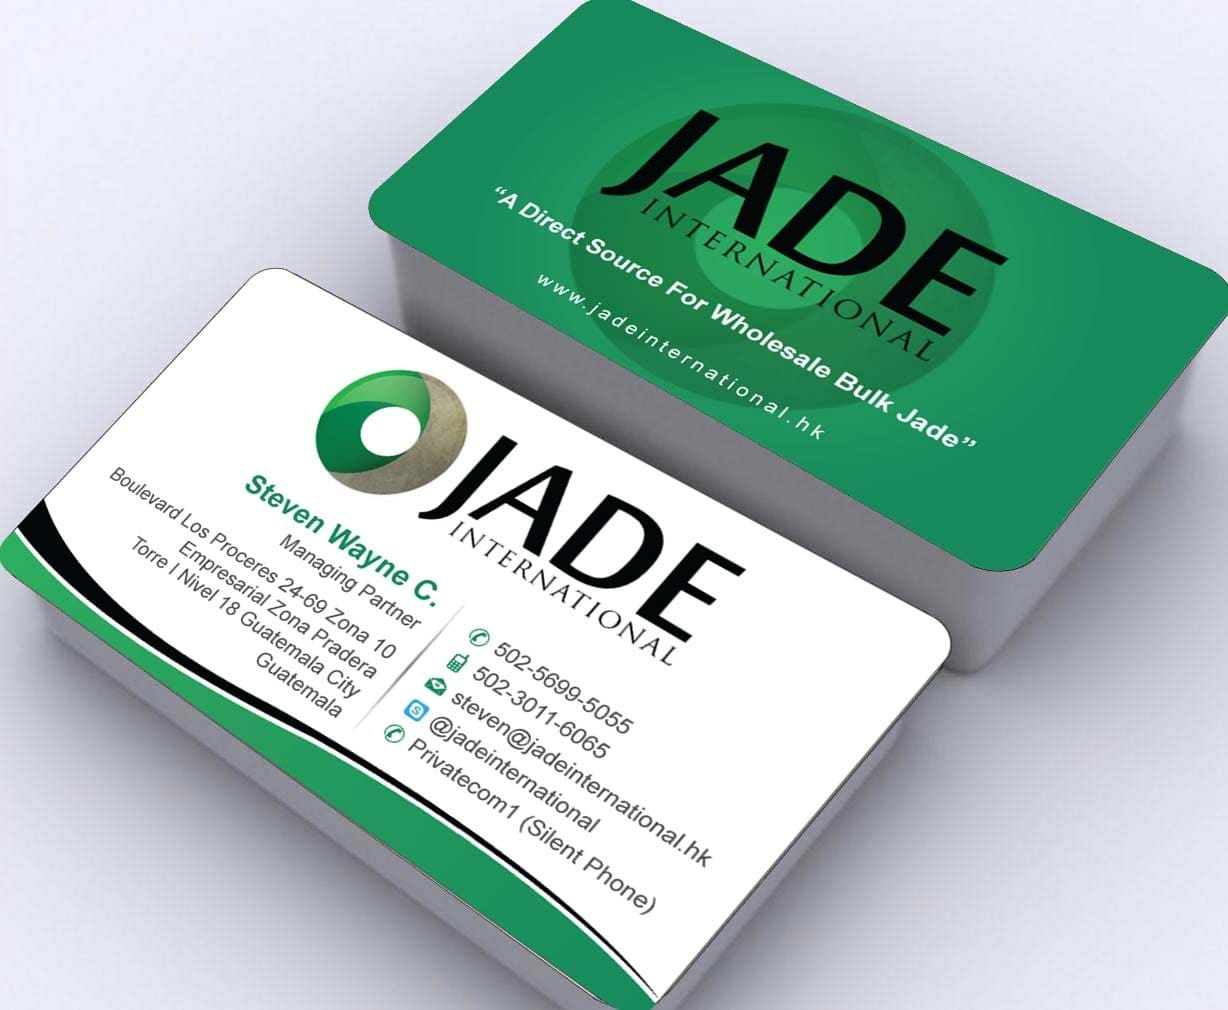 Appealing business card design | Best Graphics Design Company